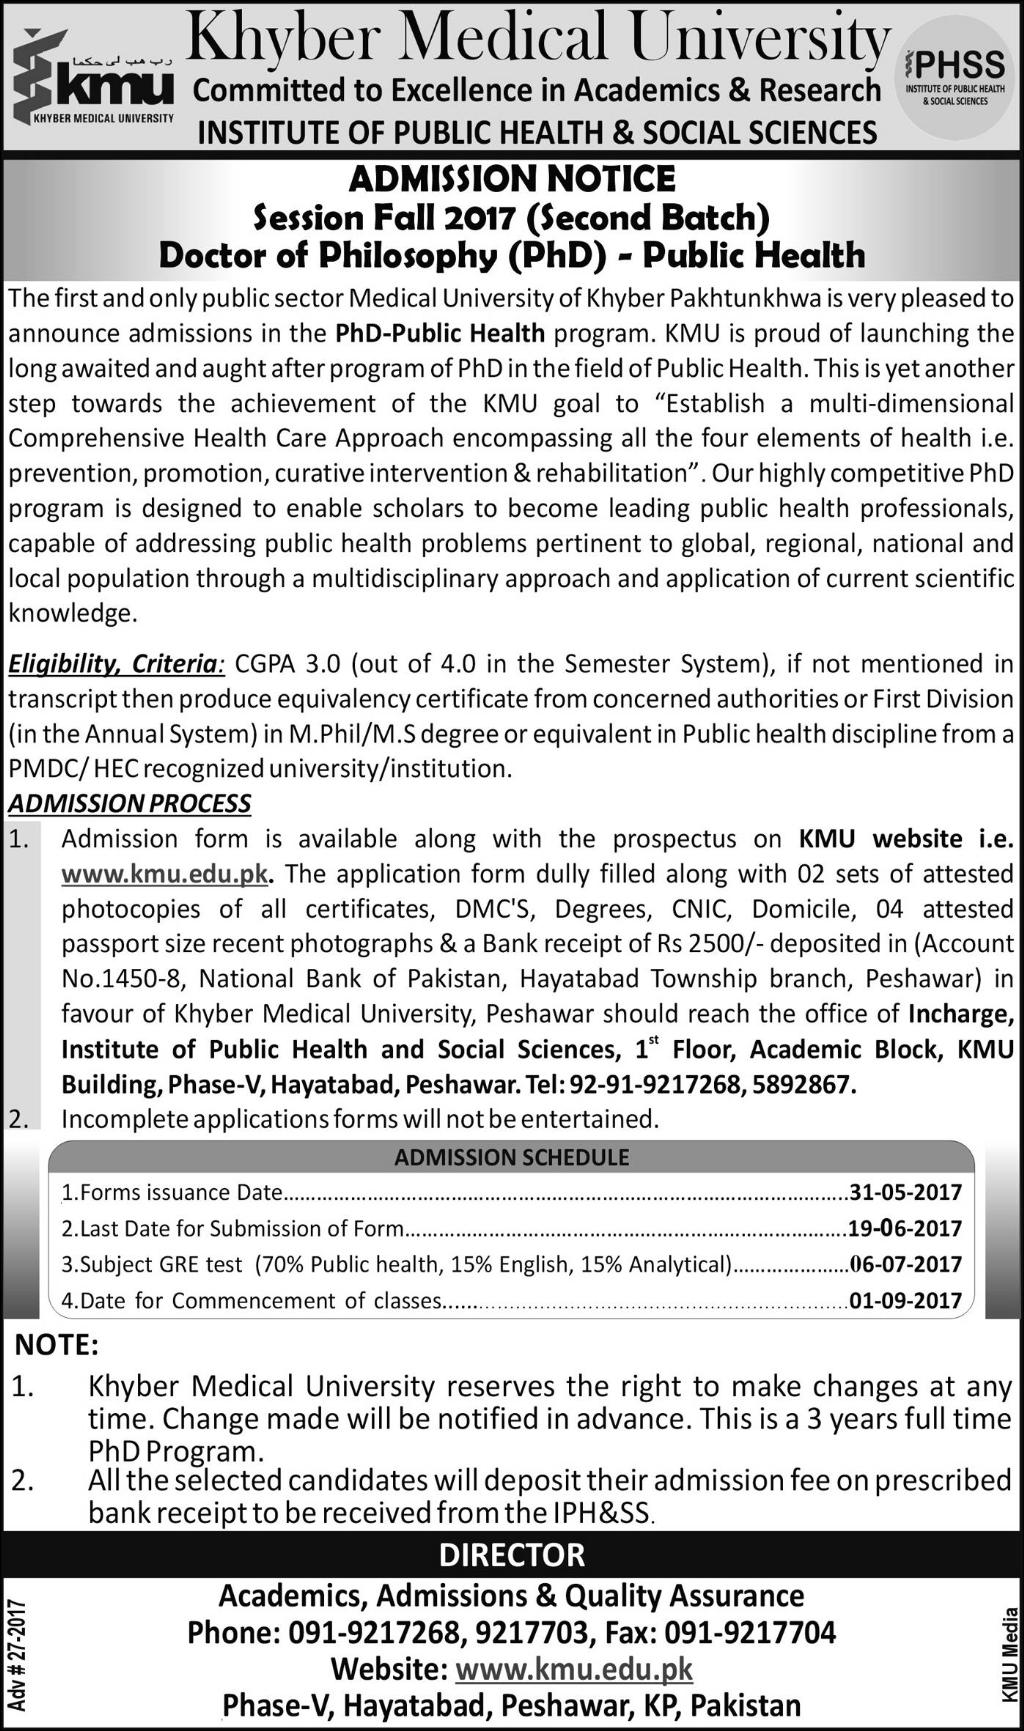 Admission Open in Khyber Medical University Peshawar 31 May 2017 on gautam buddha university, kabul medical university, riphah international university, gandhara university, king edward medical university,